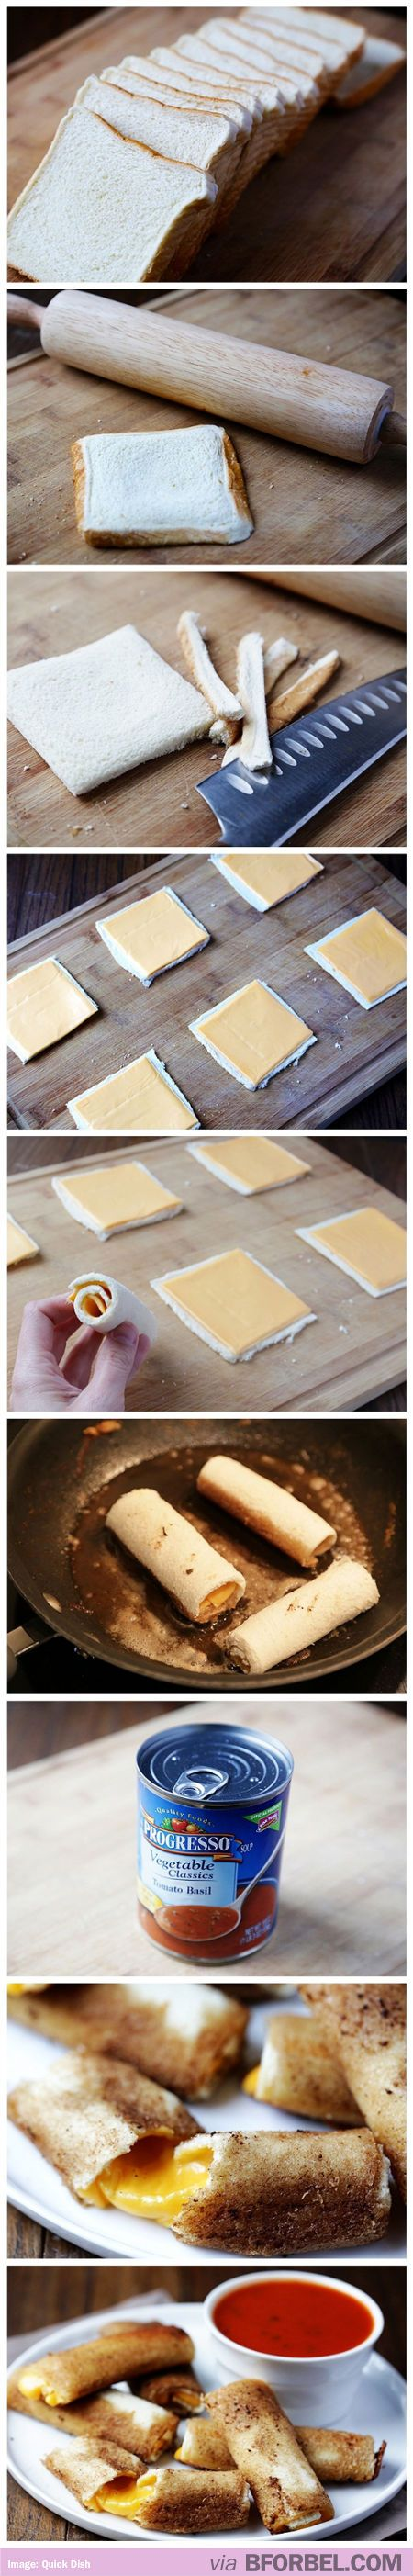 How to make grilled cheese rolls. Literally drooling all over my keyboard.